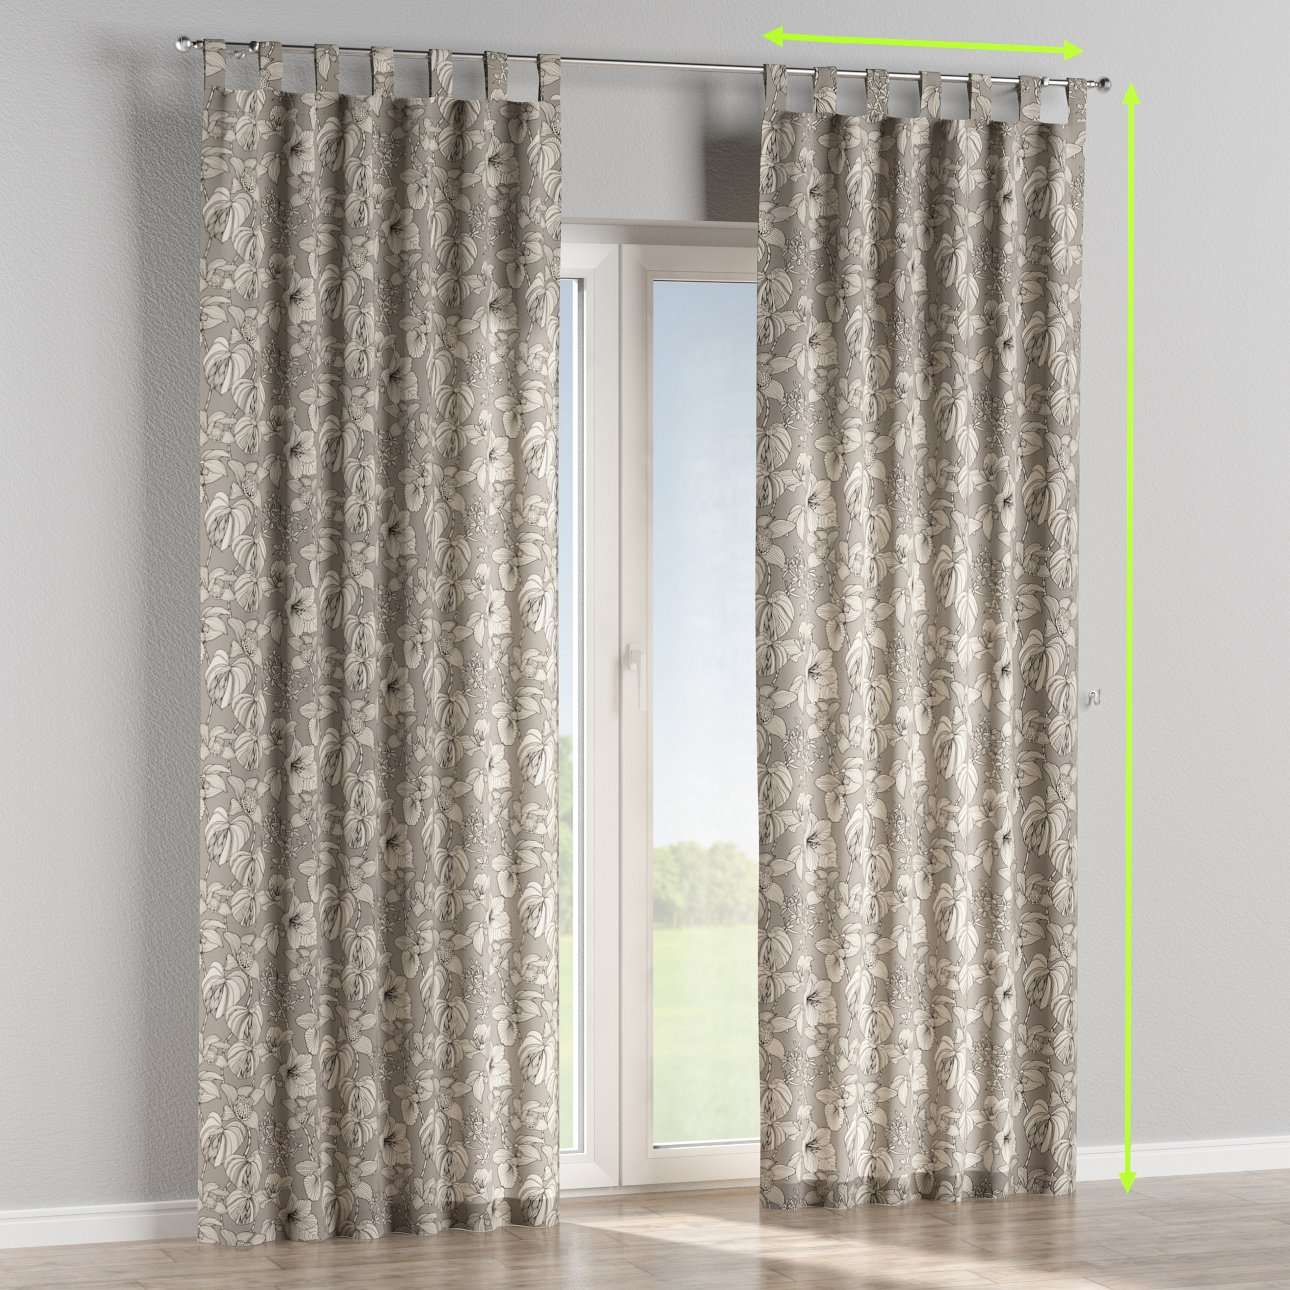 Tab top curtains in collection Brooklyn, fabric: 137-80